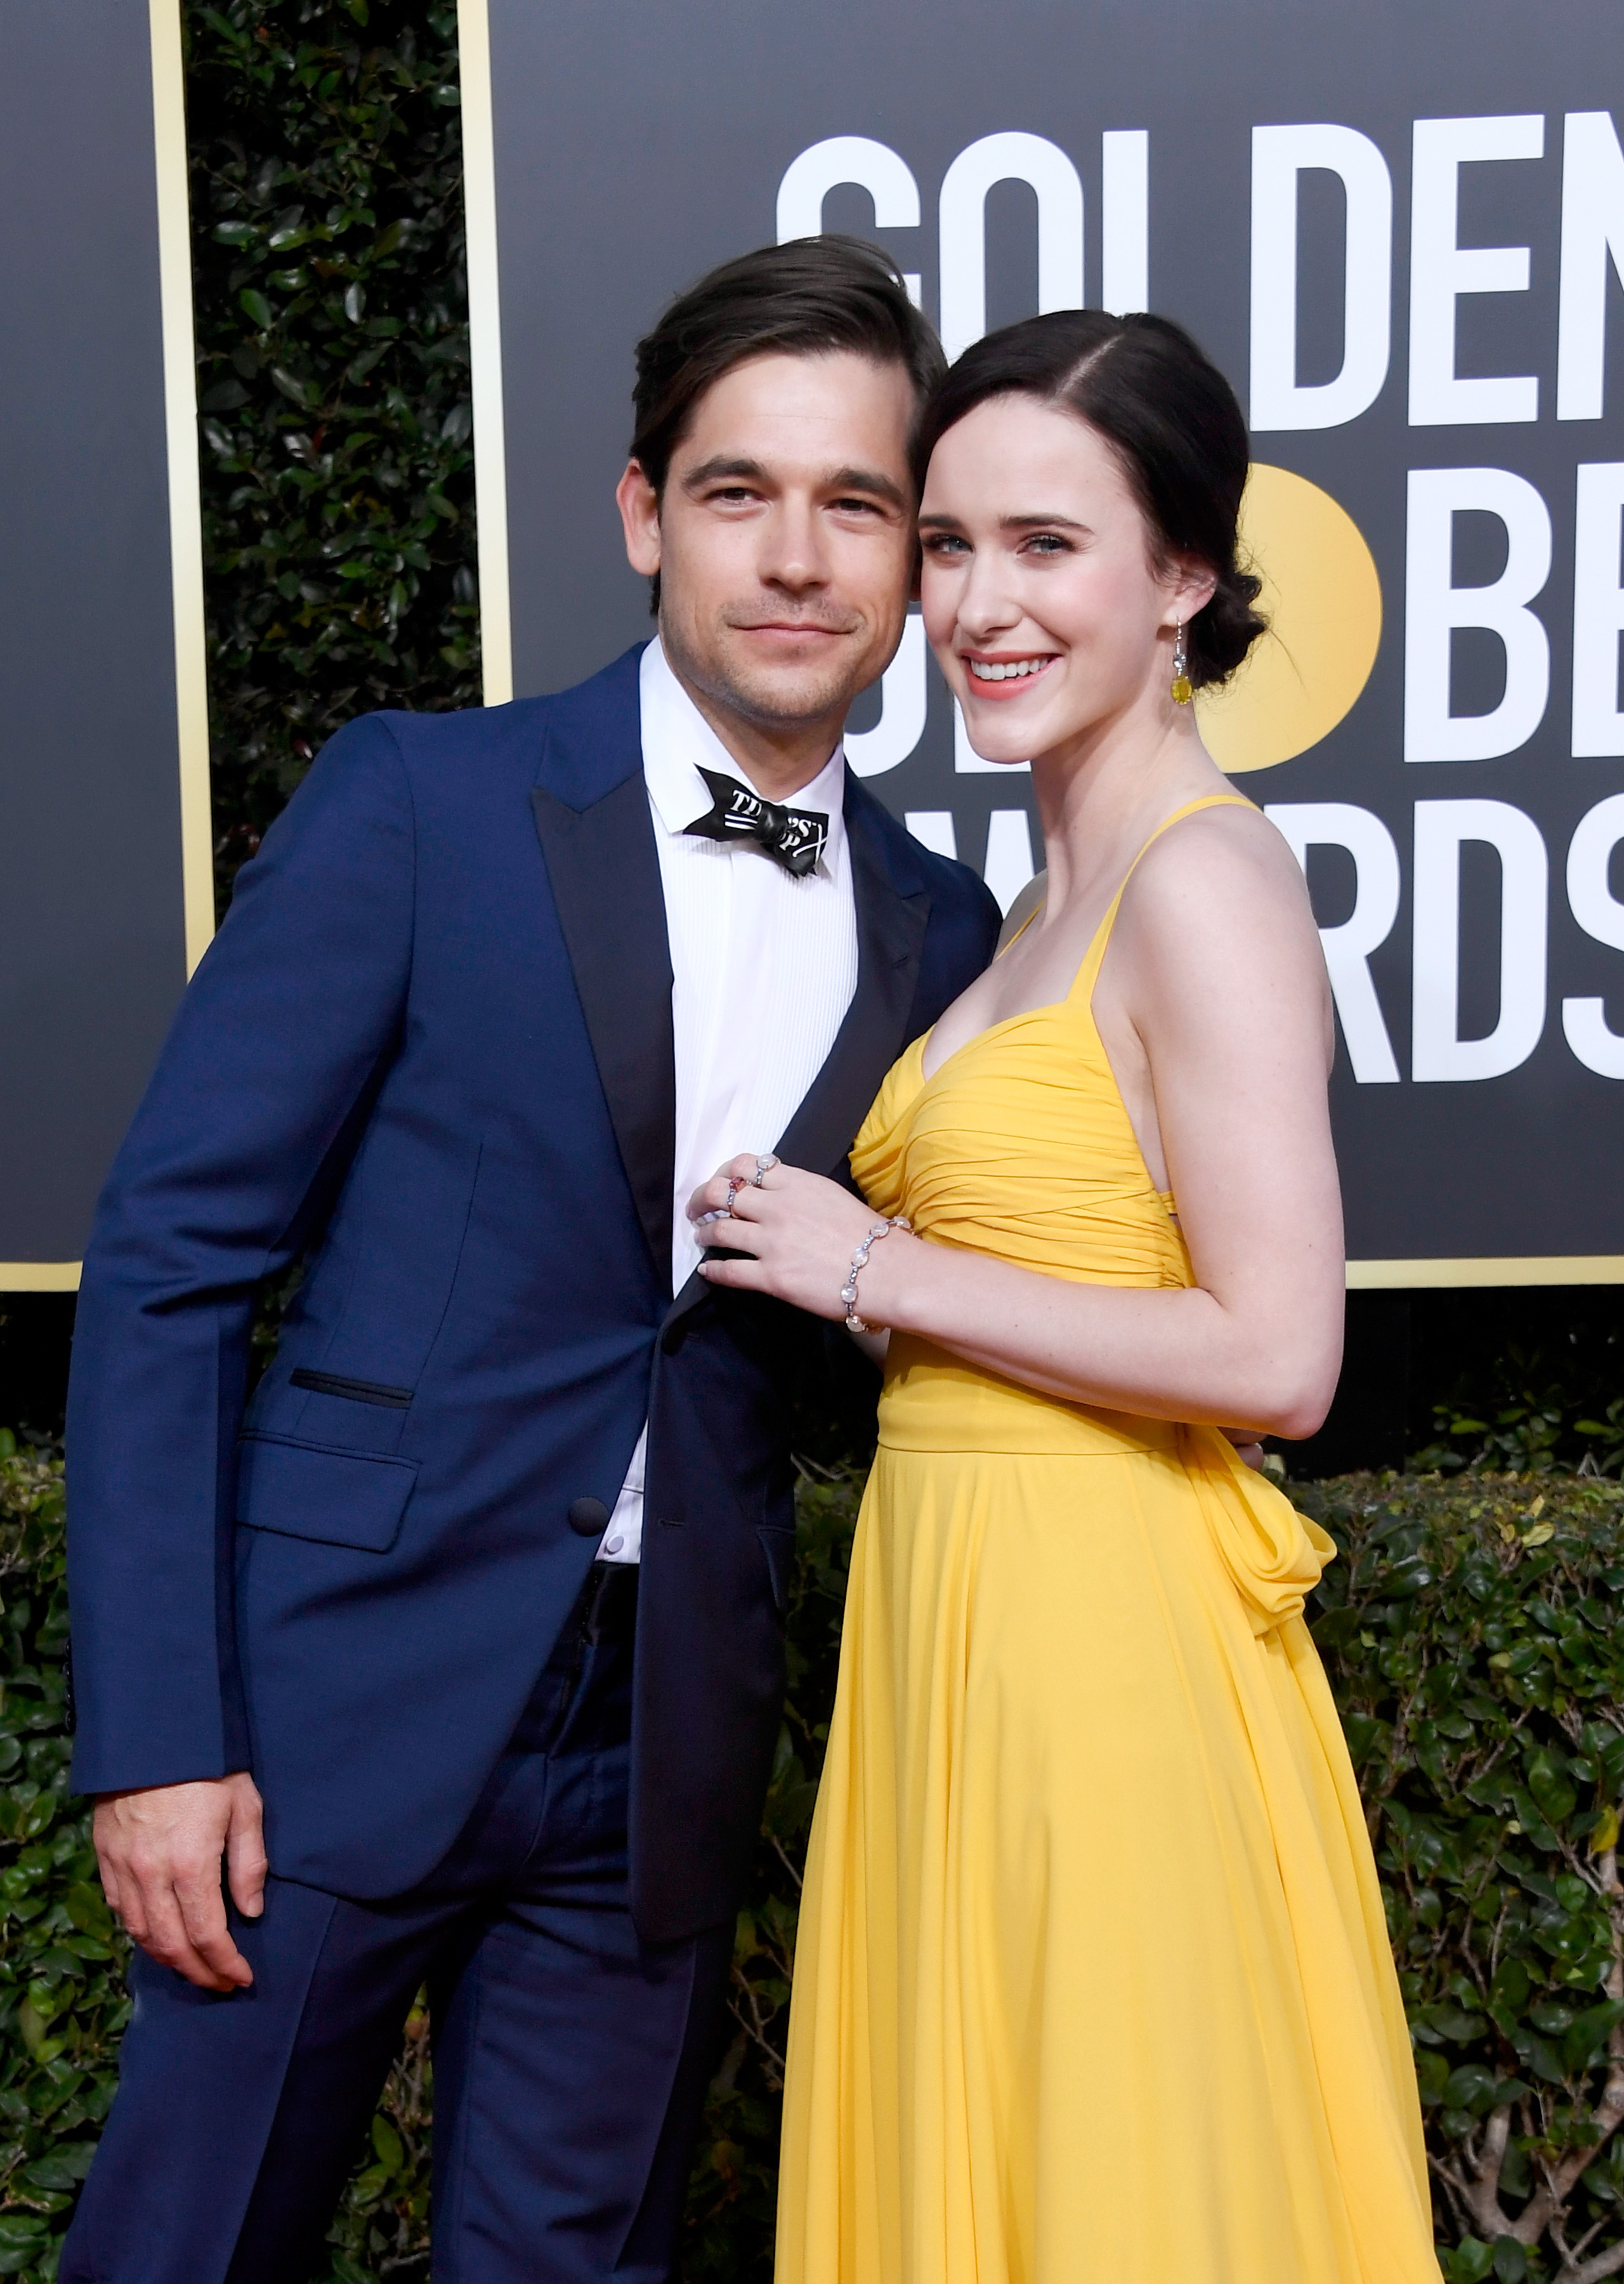 rachel brosnahan and jason ralph 2019 golden globes